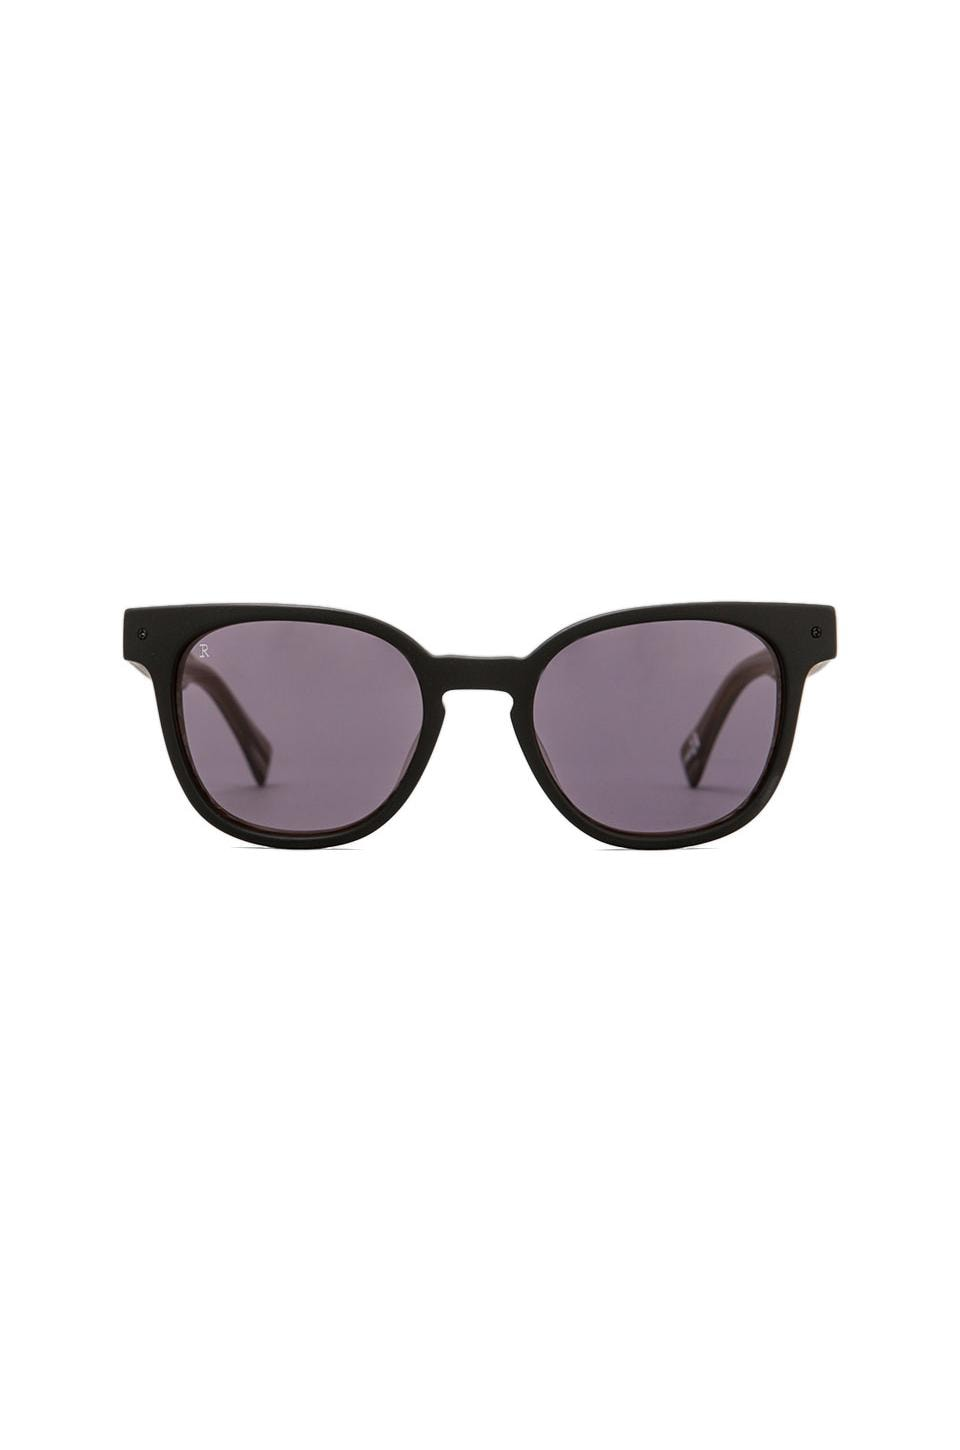 RAEN optics + Deus Ex Machina Squire Sunglass in Matte Black